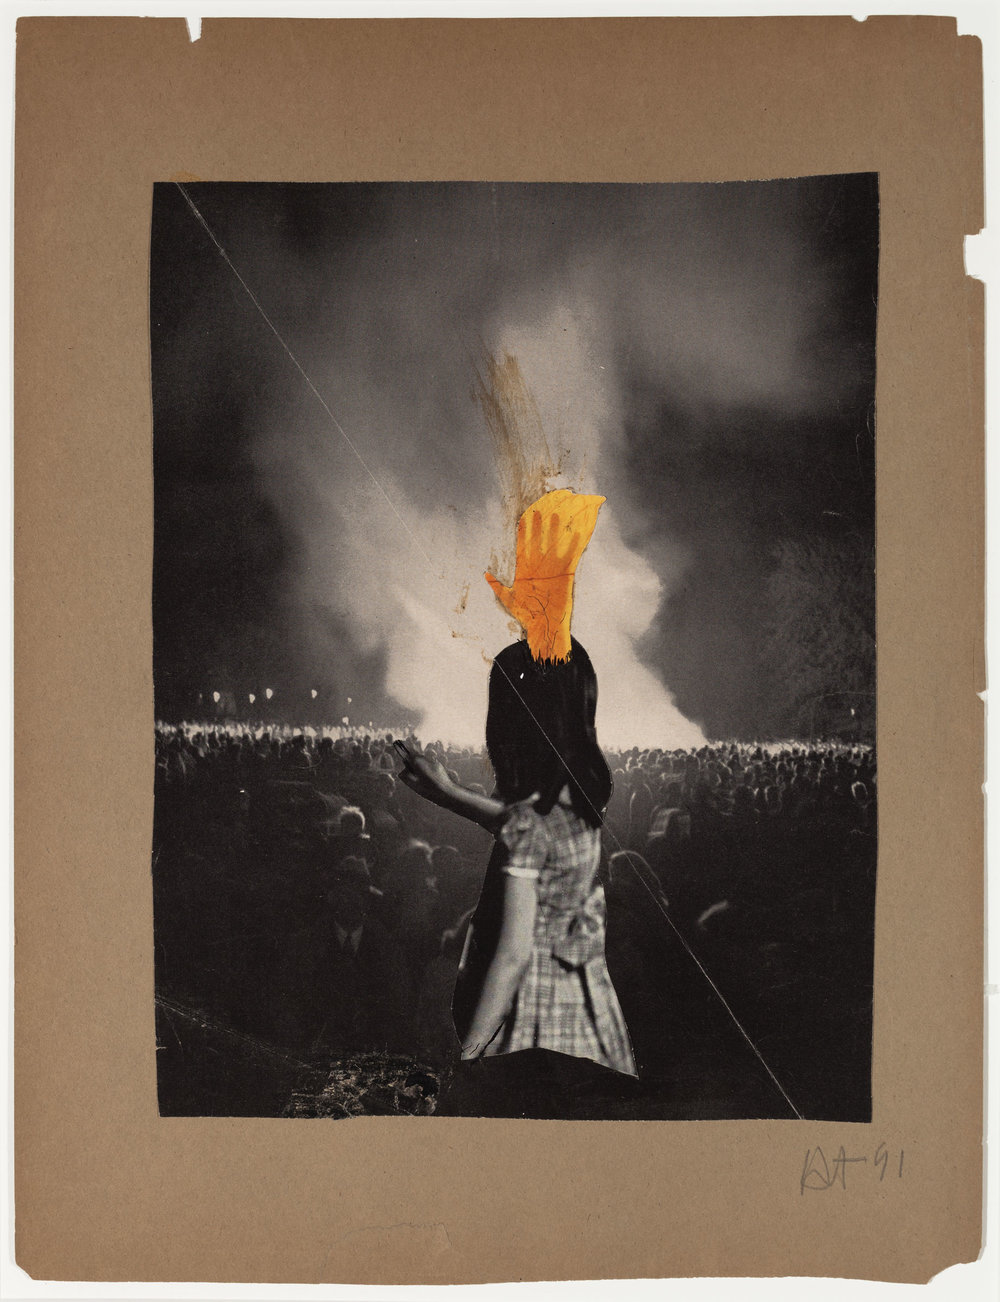 Hedda Sterne, Untitled, 1941, Collage, 15 1/2 in. x 11 7/8 in.